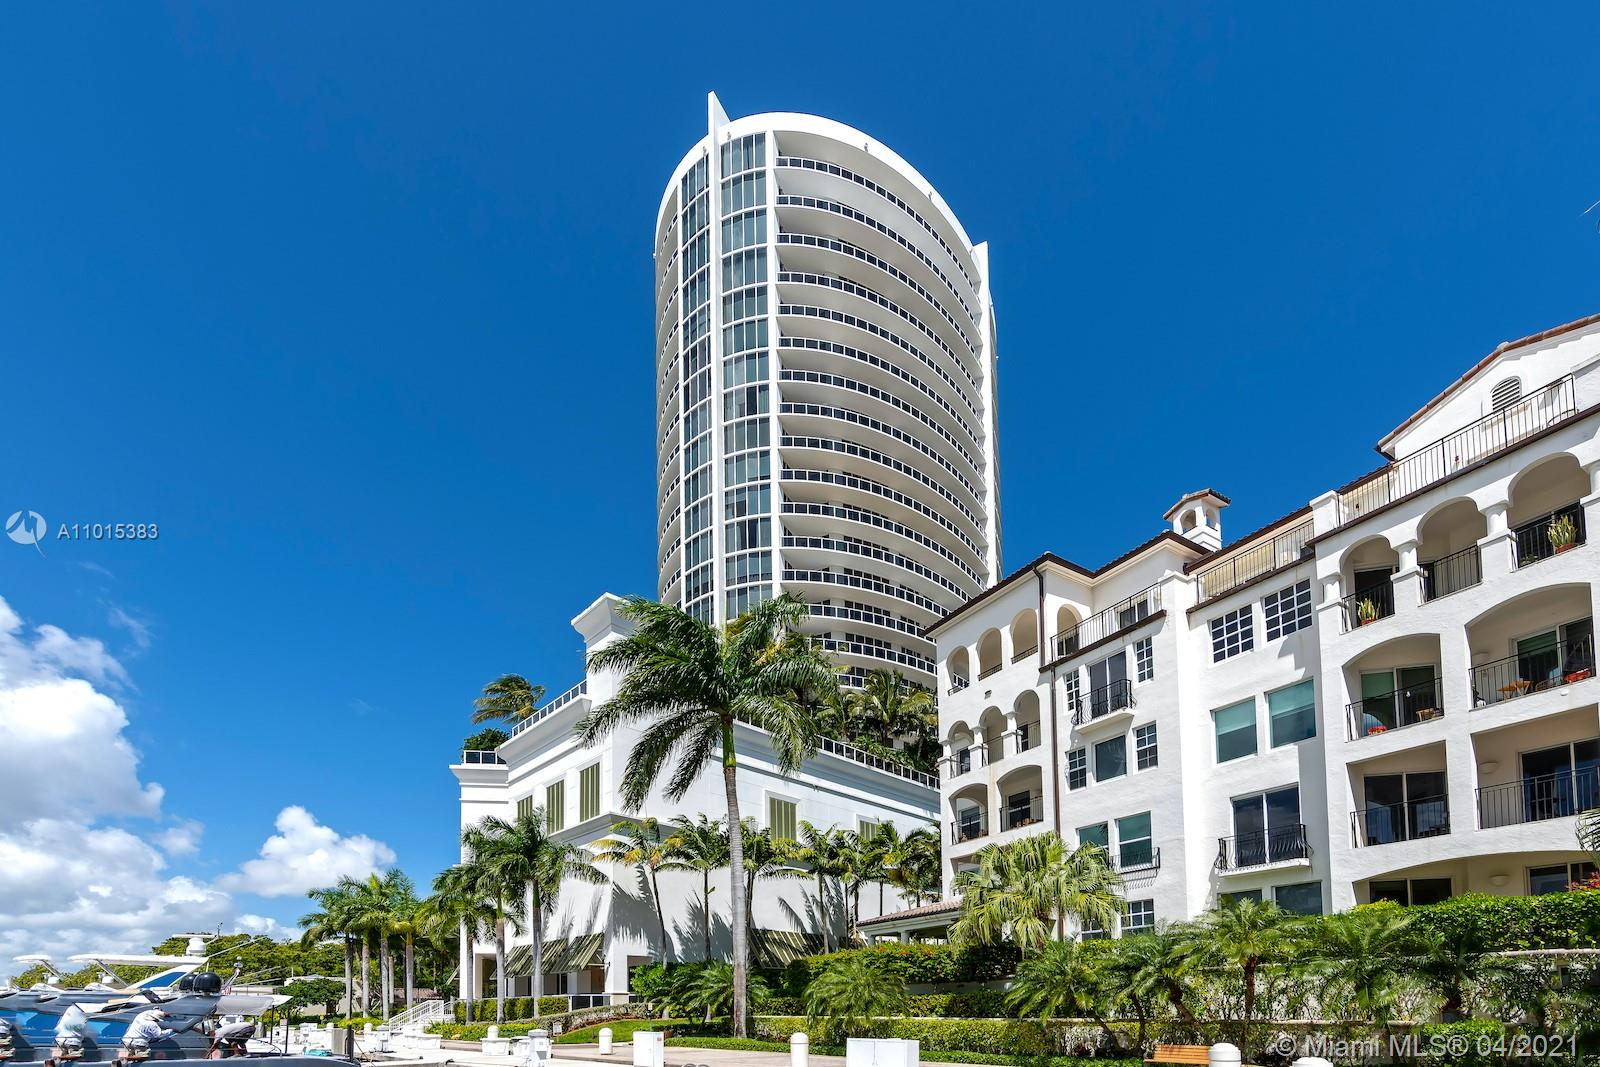 The most desirable line of the building, this unit was professionally decorated and is being offered fully furnished. Spacious 3 bedrooms, 3.5 bathrooms with wrap around balcony. Private elevator foyer, impact glass windows throughout the apt, and modern open kitchen. Williams Island is a luxury gated community in the heart of Aventura with five star amenities, such as 15 tennis courts, state of the art gym and Spa, 2 restaurants, kid's park, marina and much more. Easy to show!